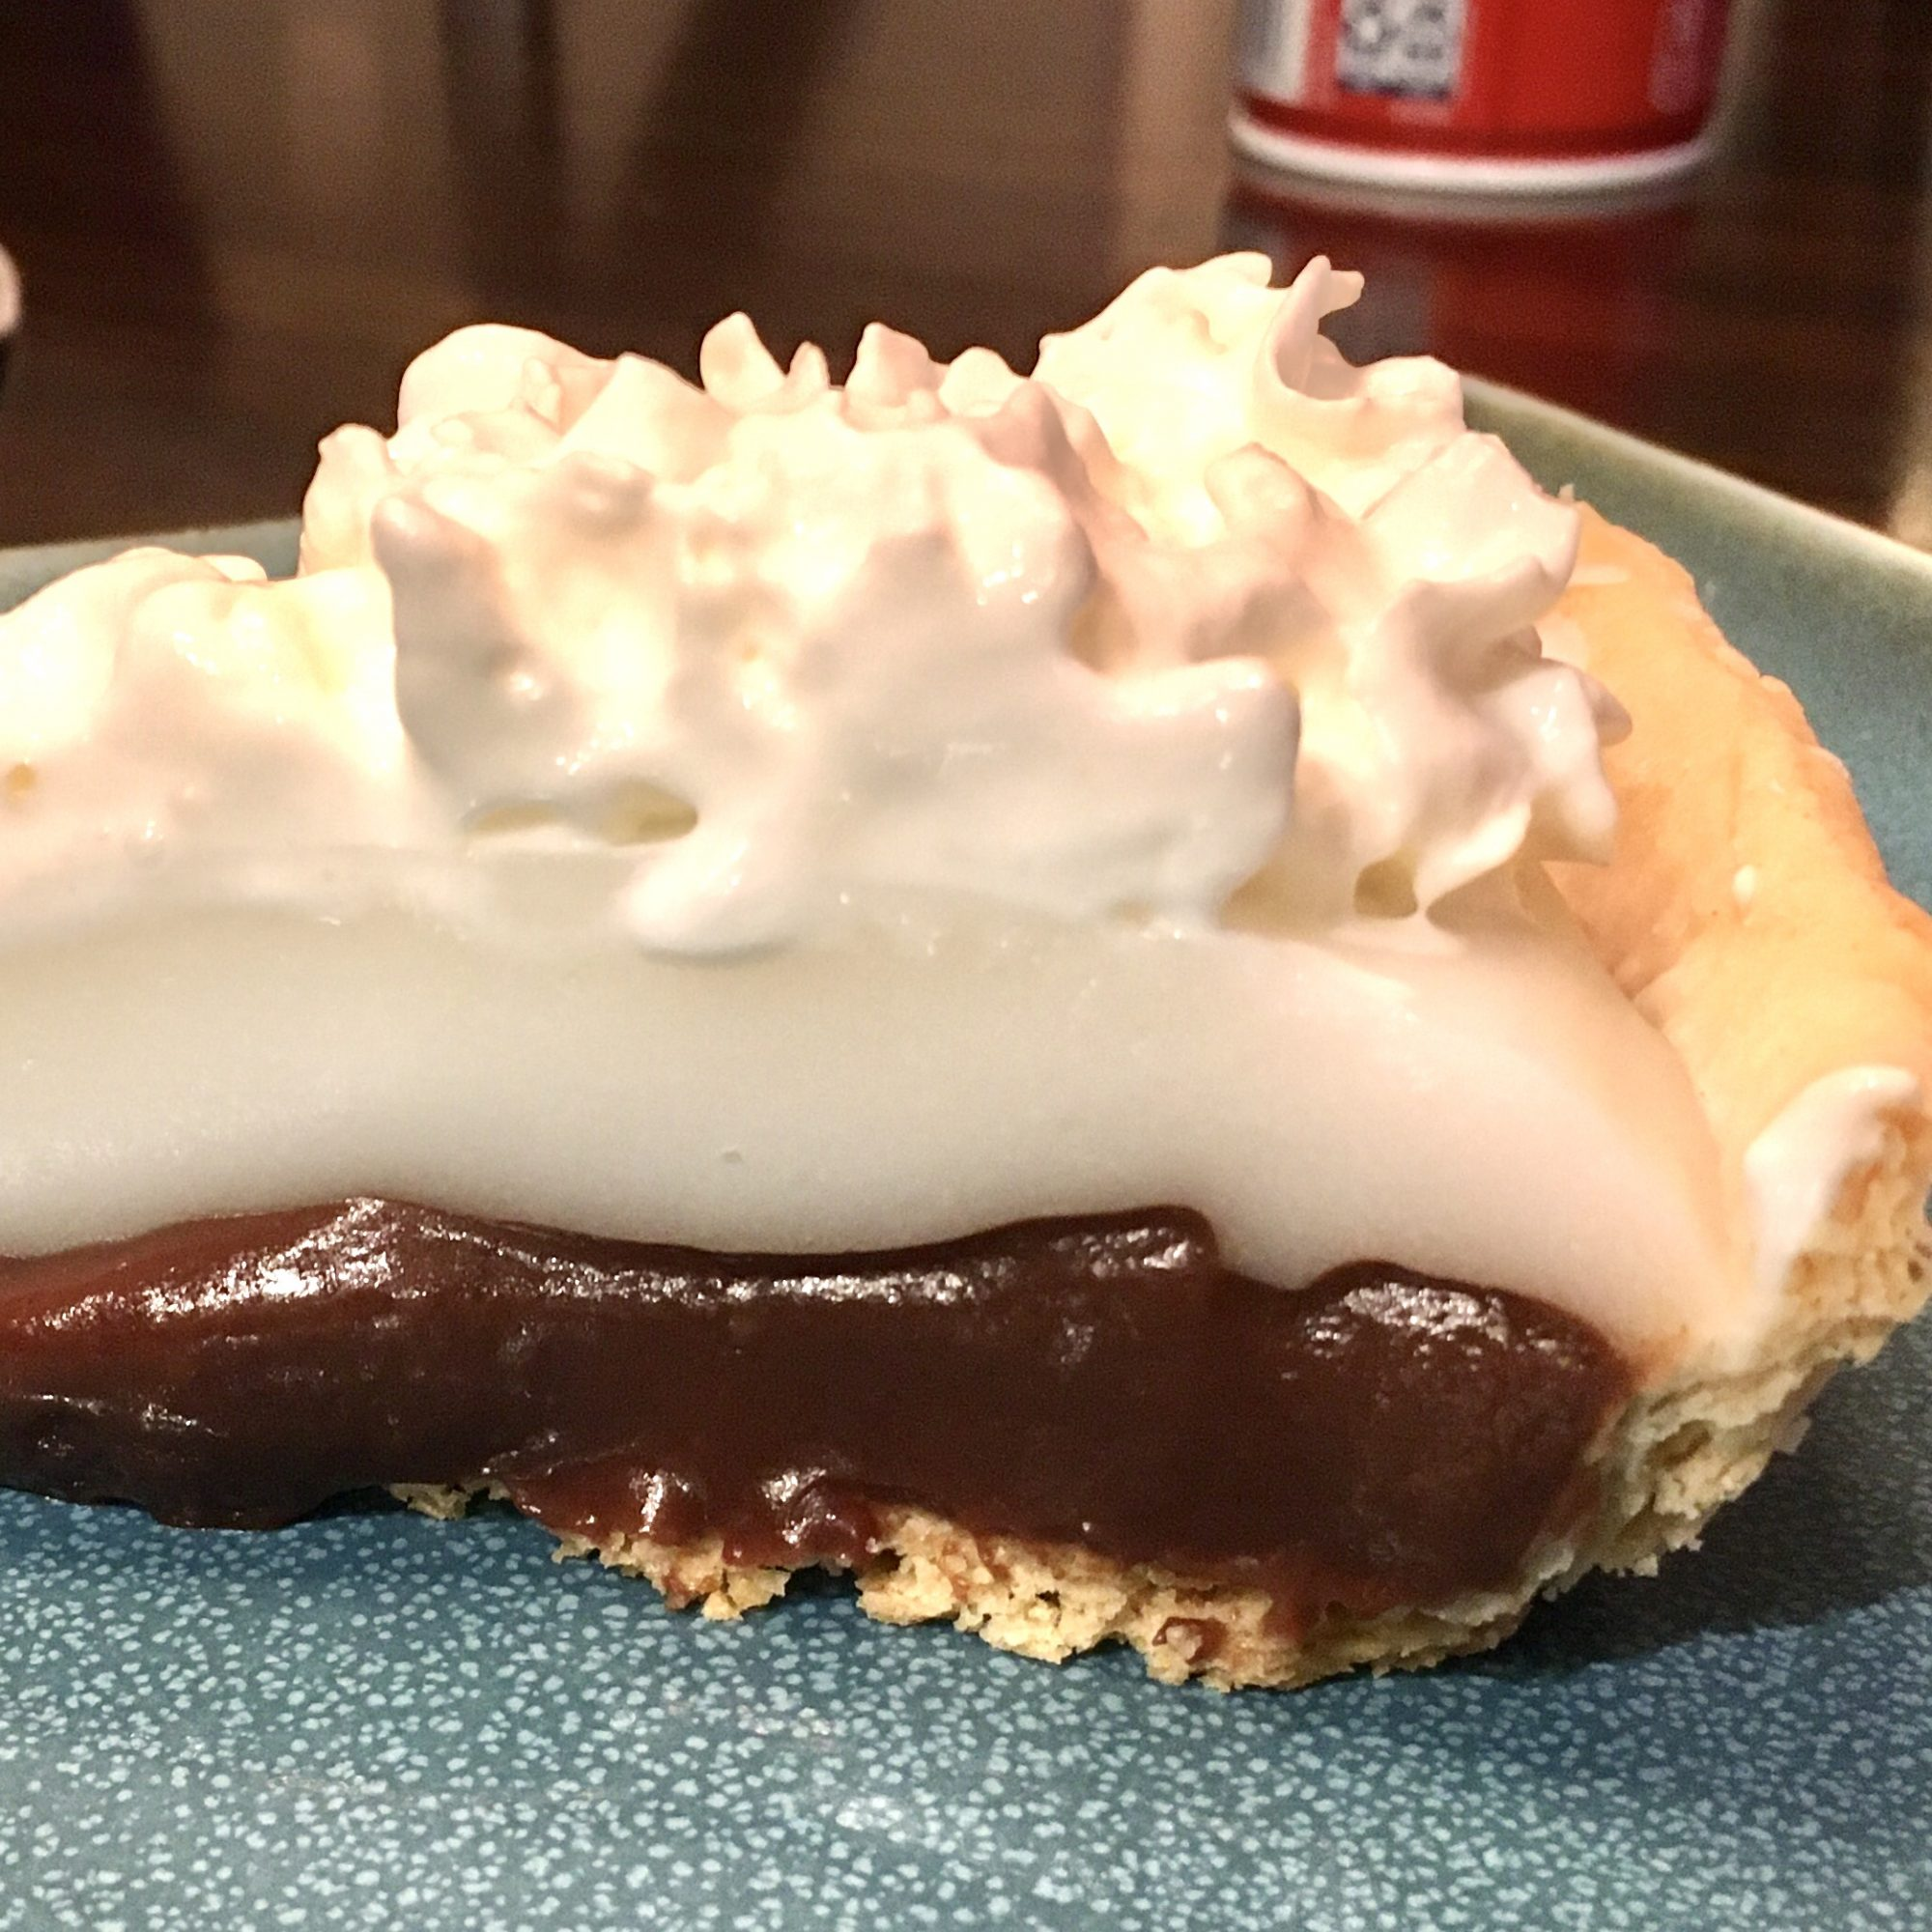 a slice of Coconut and Chocolate Pie on a blue plate